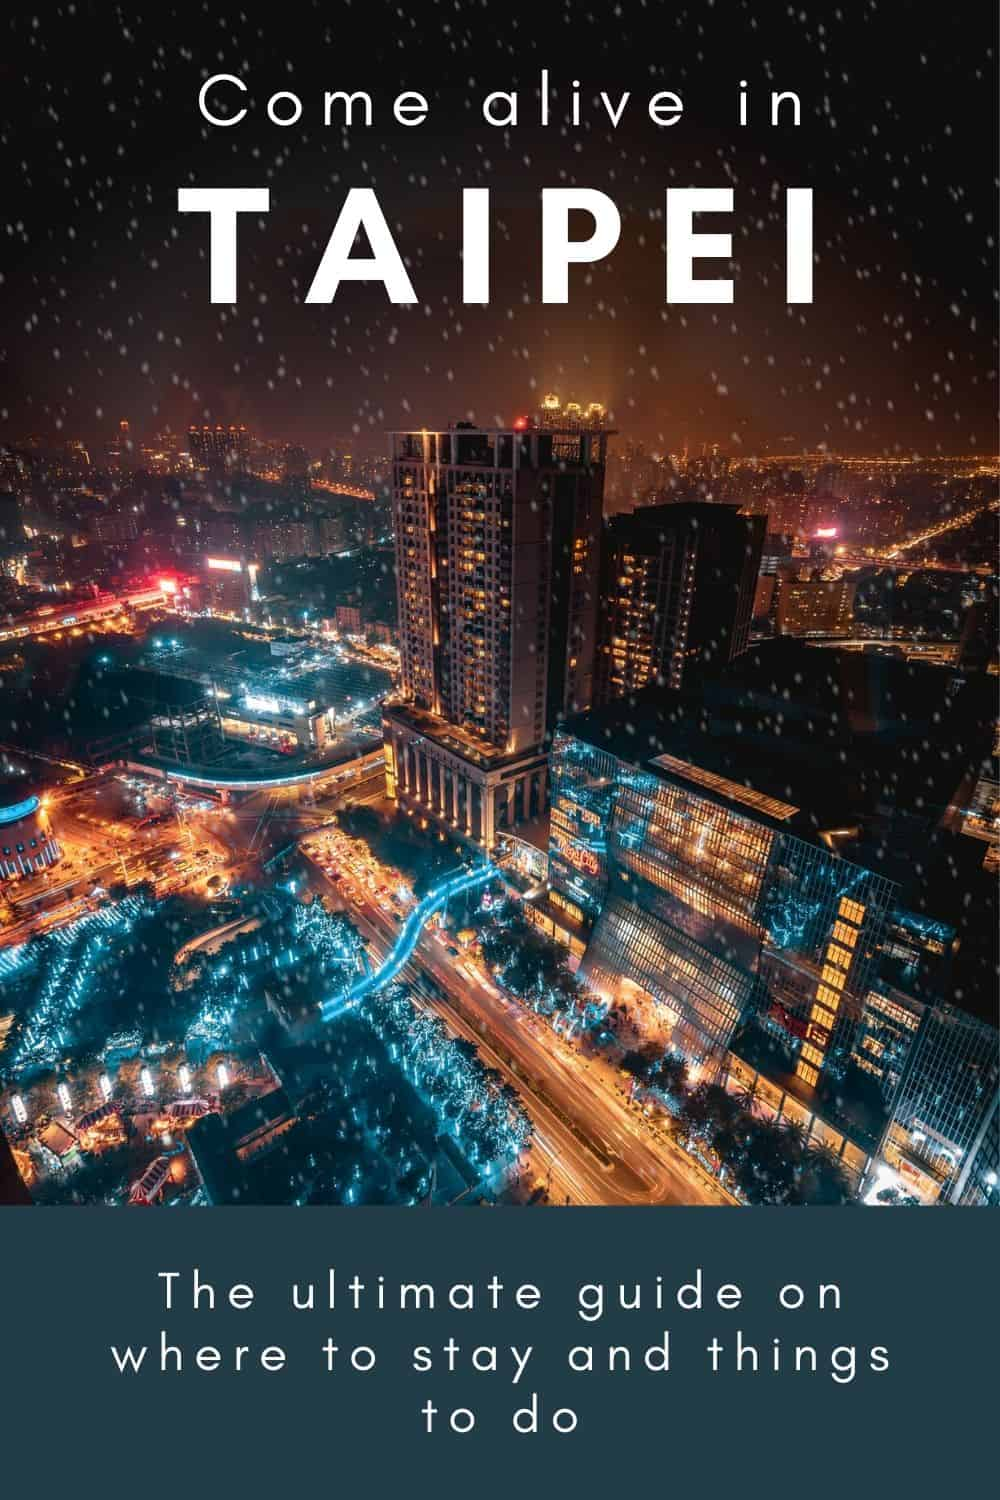 Where To Stay in Taipei - A Guide to the Best Hotels and Neighborhoods